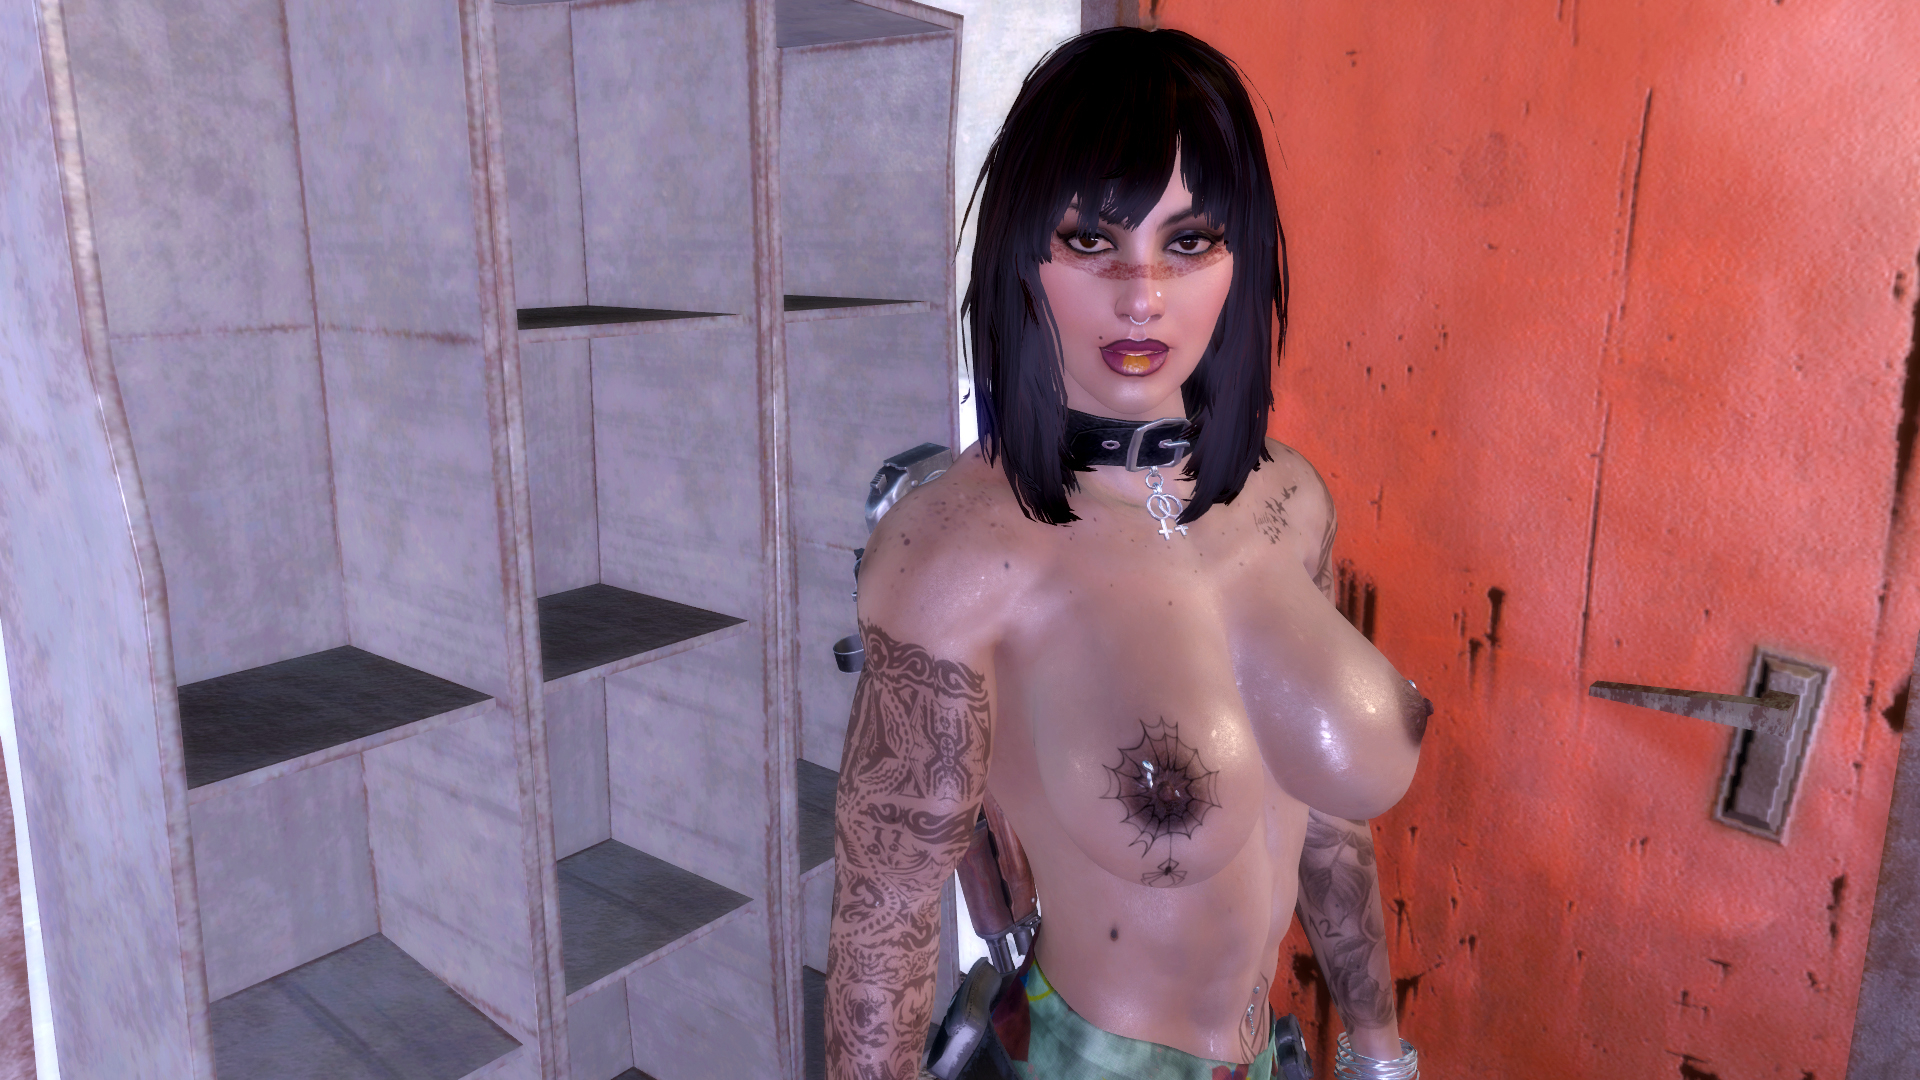 fallout42018-11-0623-2afh9.jpg